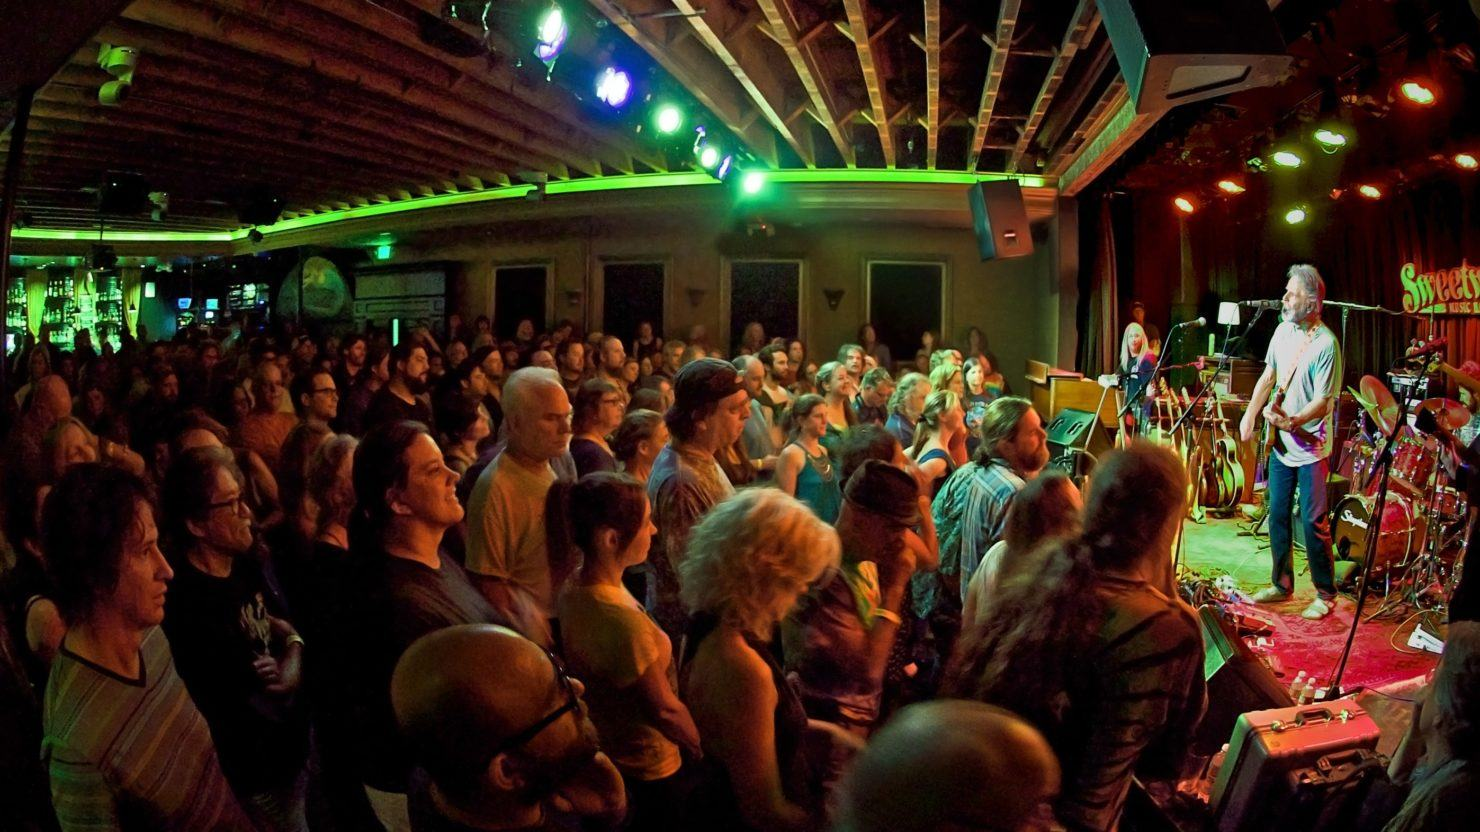 Sweetwater Music Hall - Shows, Tickets, Map, Directions